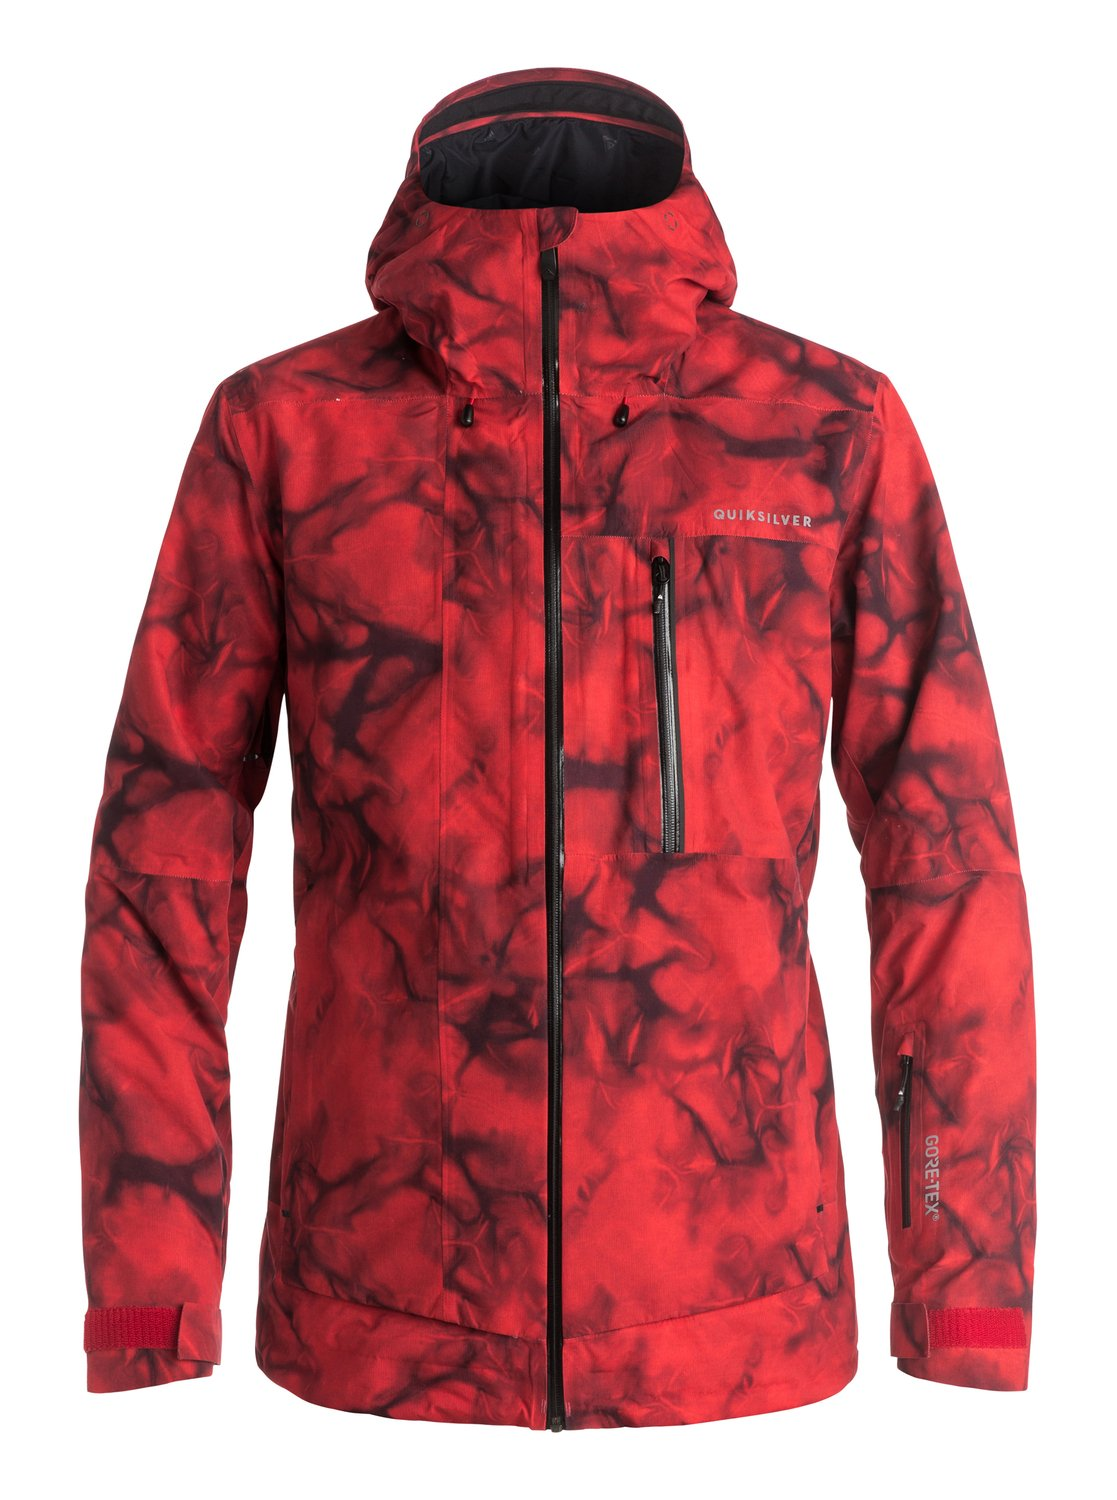 Сноубордическая куртка Impact Printed GORE-TEX®Joining this seasons Highline collection, the ultimate in outerwear technology, the Impact Printed snow jackets standout tie-dye design has been constructed with GORE-TEXs® 2L industry leading waterproofing that is guaranteed to keep you warm and dry all day, every day. PrimaLoft® Silver insulation offers compressible high-loft insulation for absolute insurance in all conditions and bulk-free breathable insulation. Fully-taped seams seal the deal.<br>